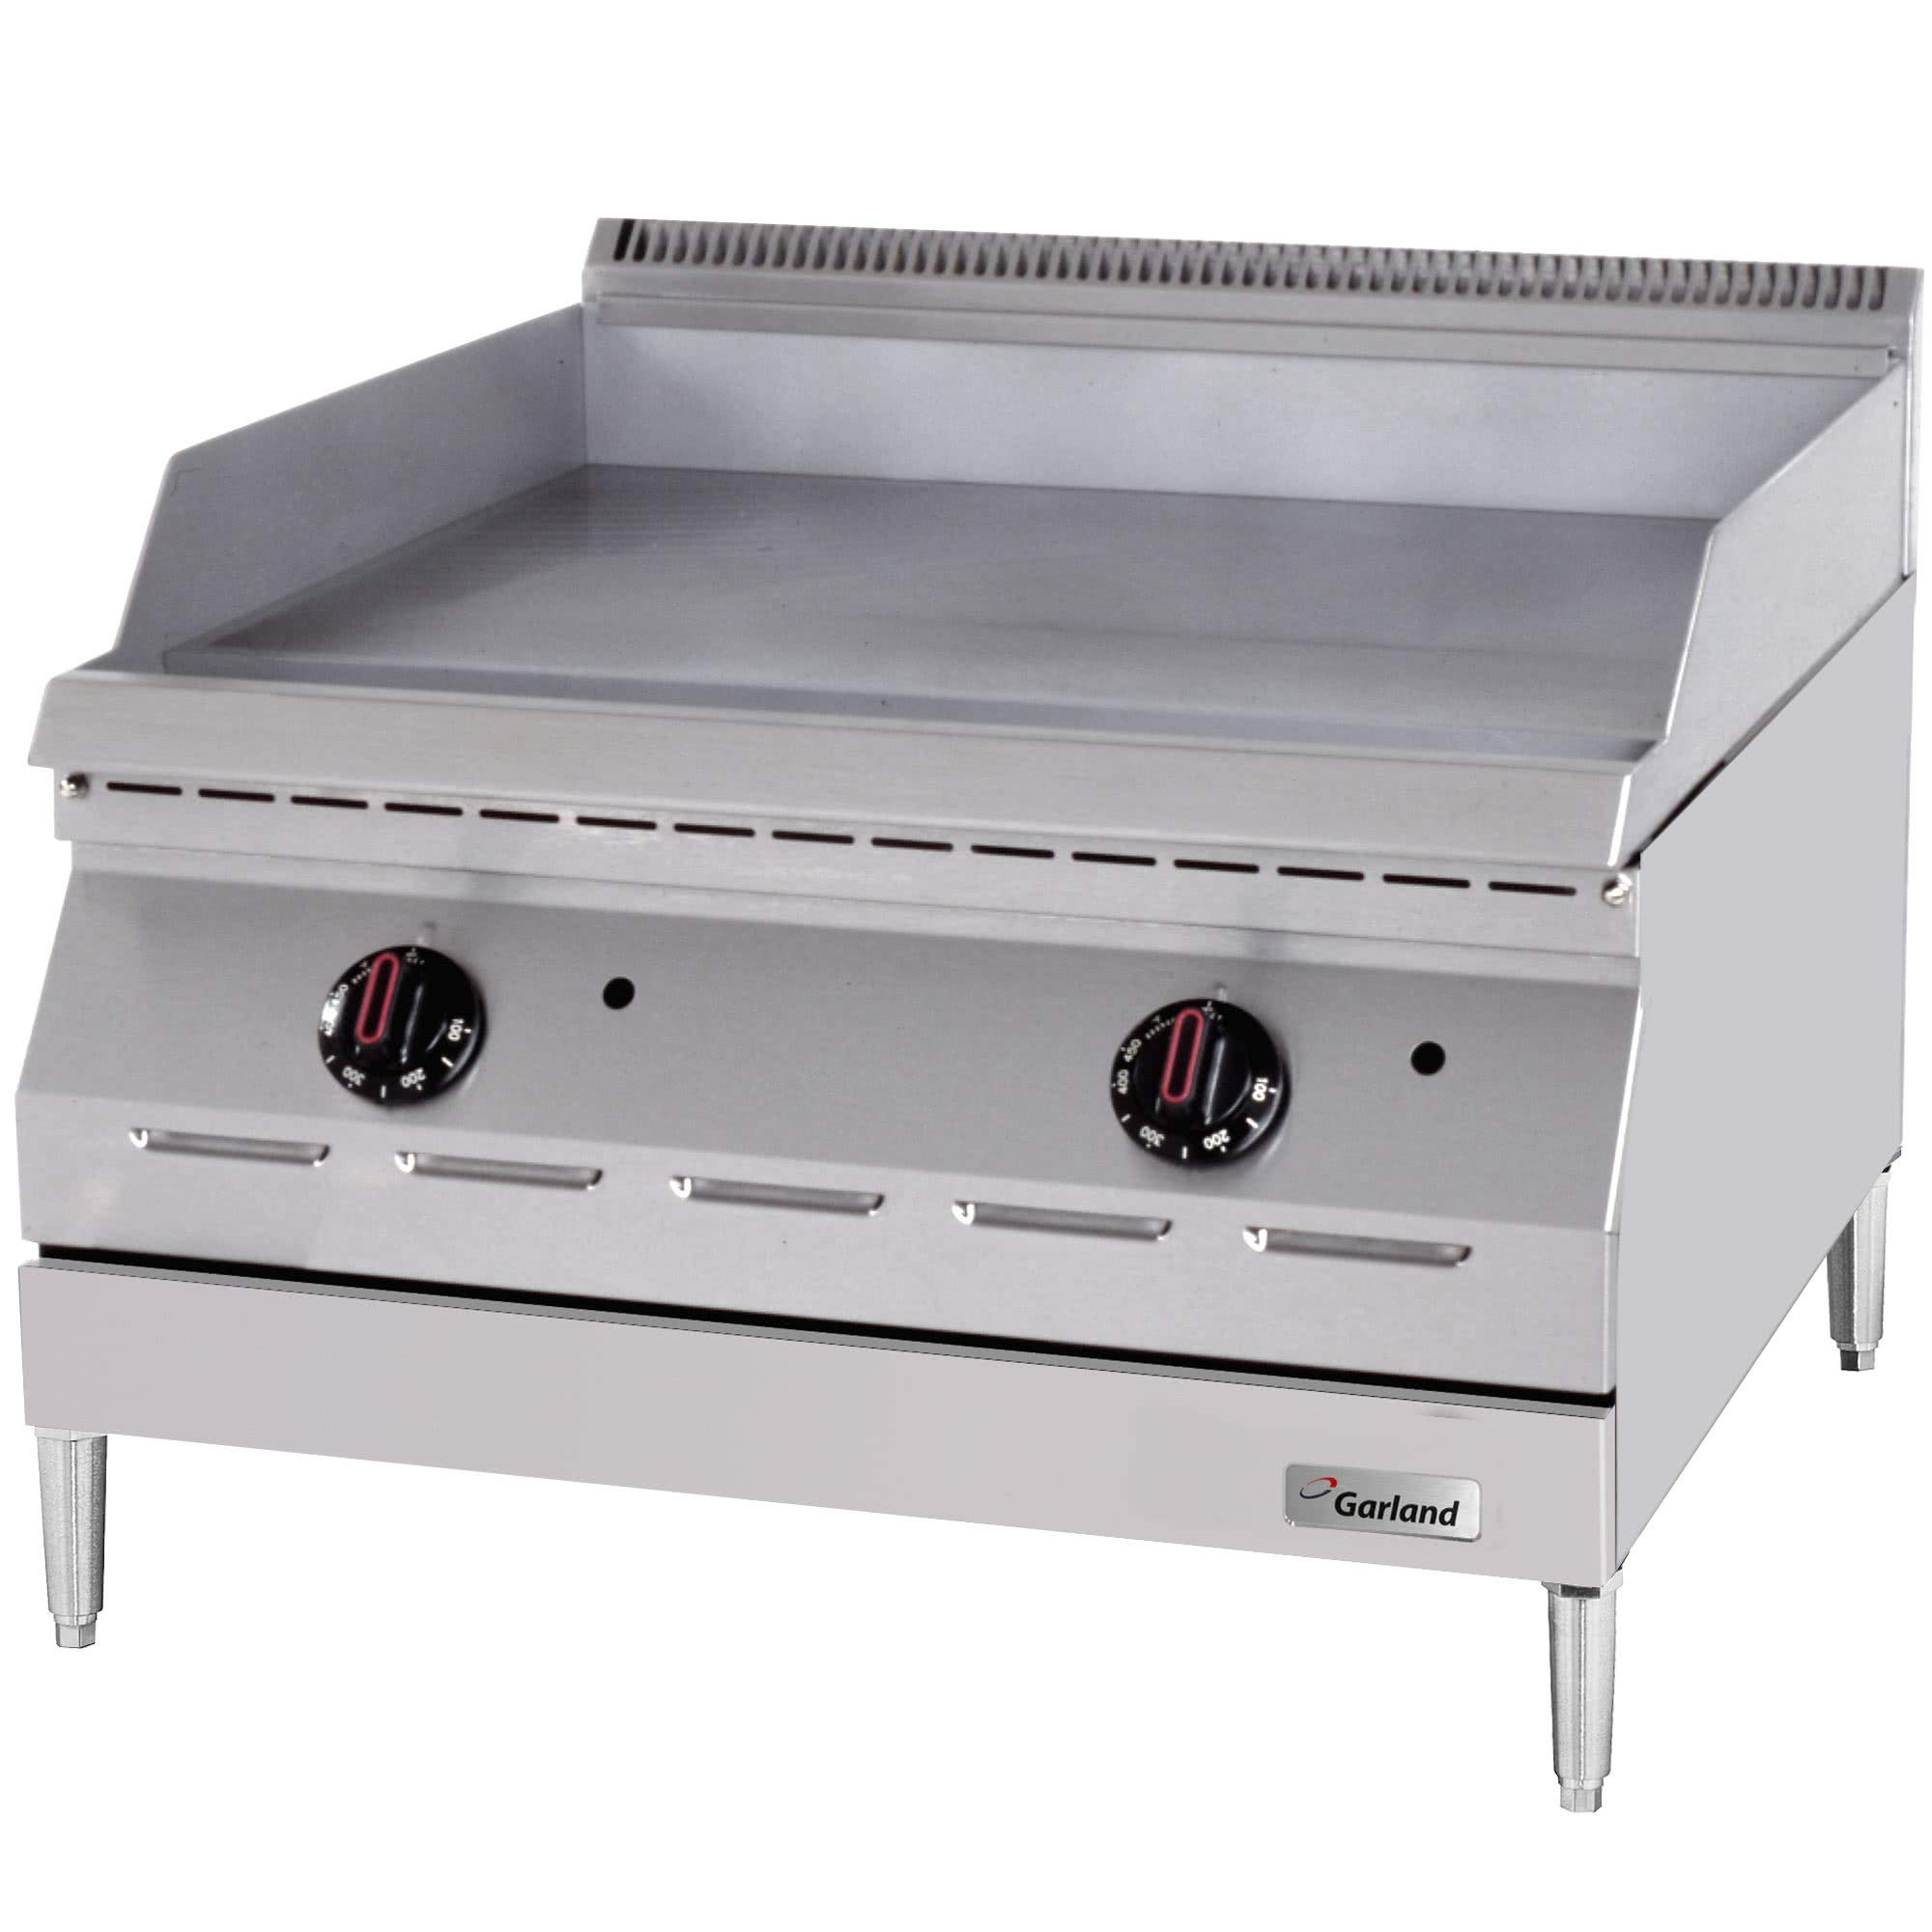 TableTop King GD-24G Designer Series Natural Gas 24'' Countertop Griddle - 40,000 BTU by TableTop King